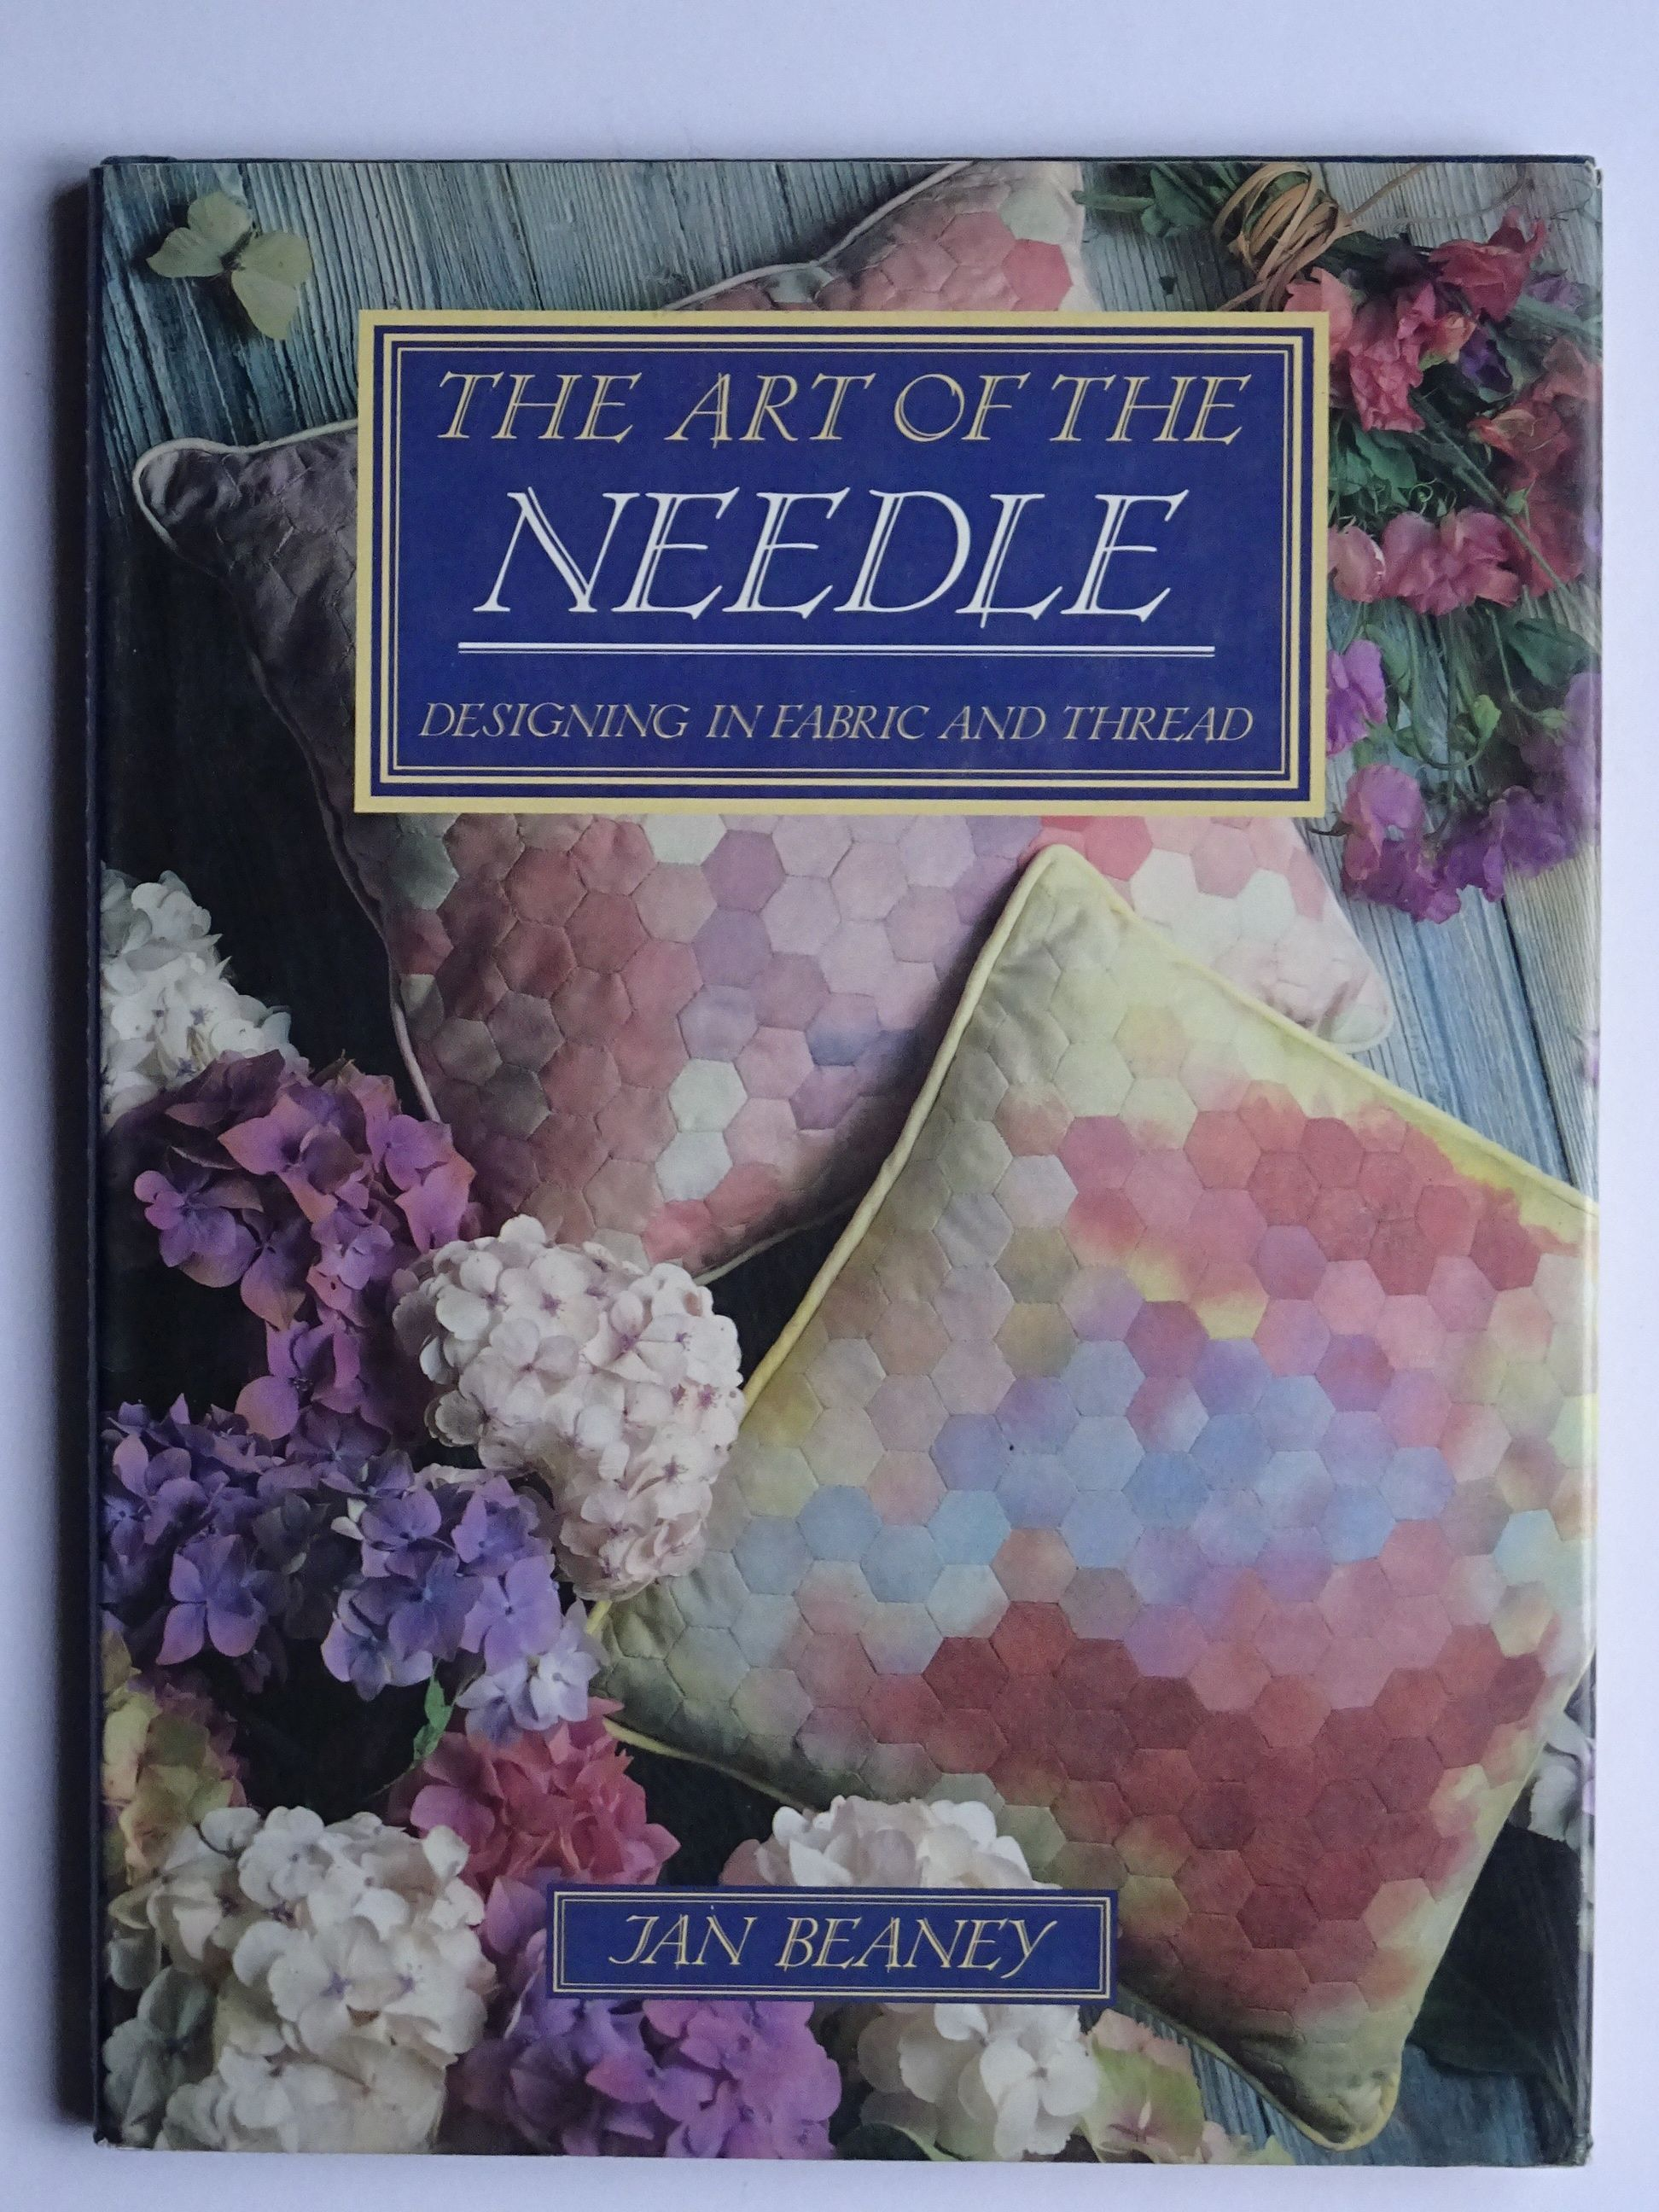 Beany, Jan - The Art of the Needle